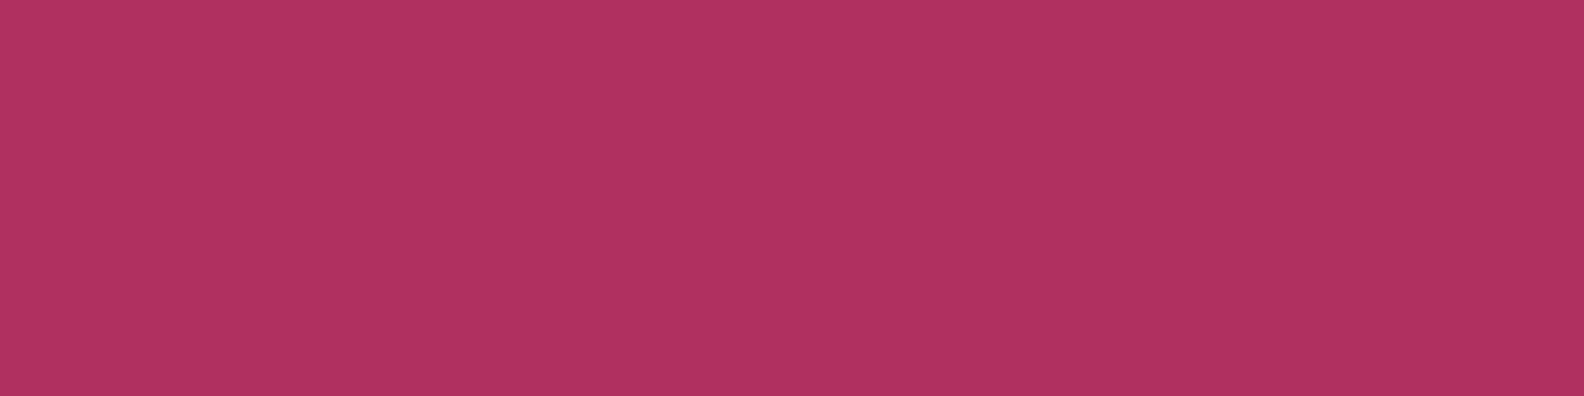 1584x396 Maroon X11 Gui Solid Color Background